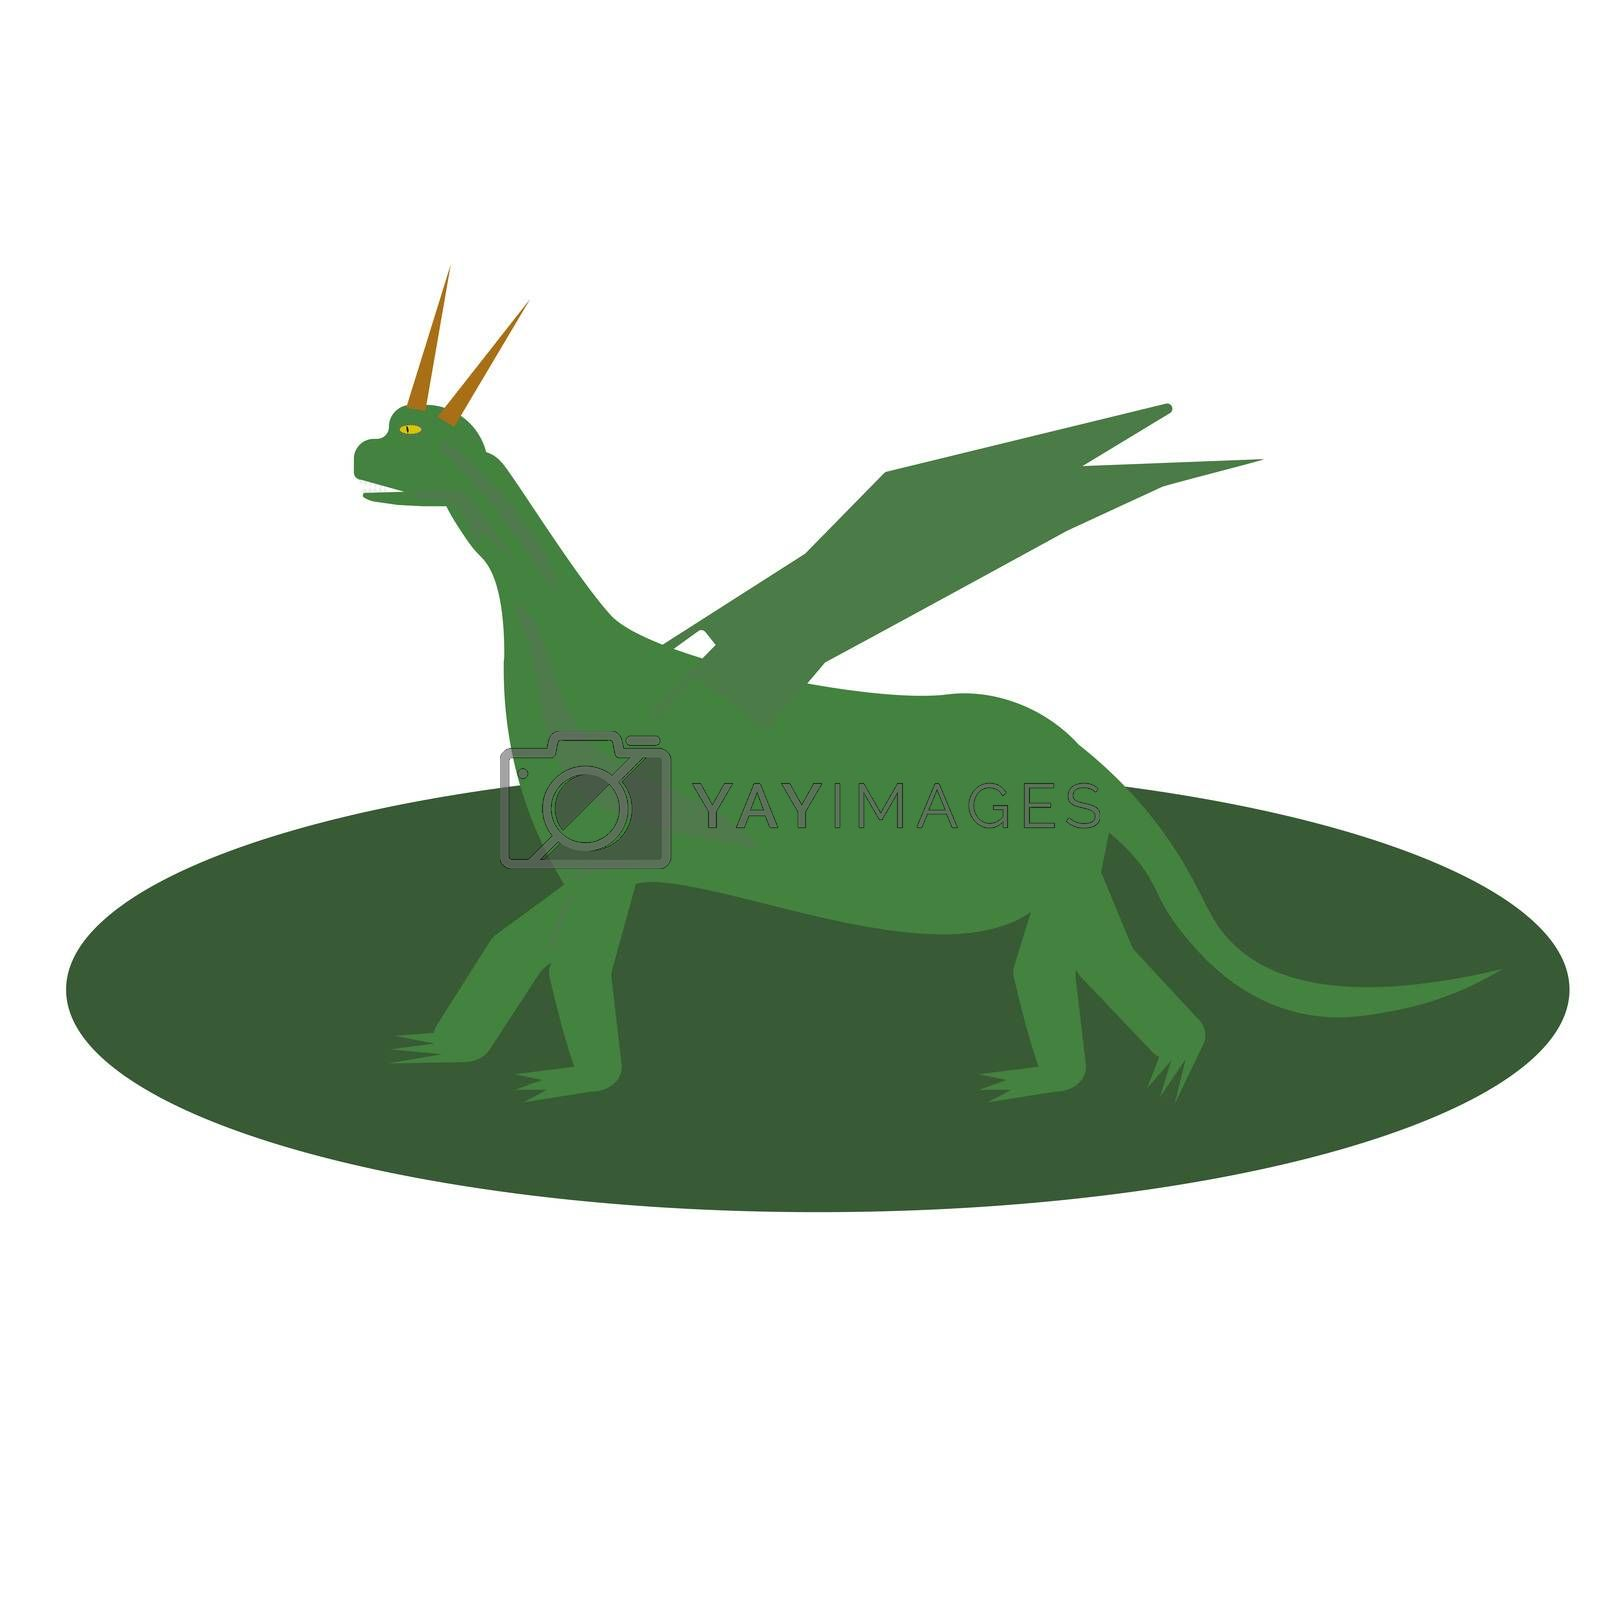 Fairytale green Dragon Flat Isolated Childish Style Simple Drawing In Bright Colors On White Background.